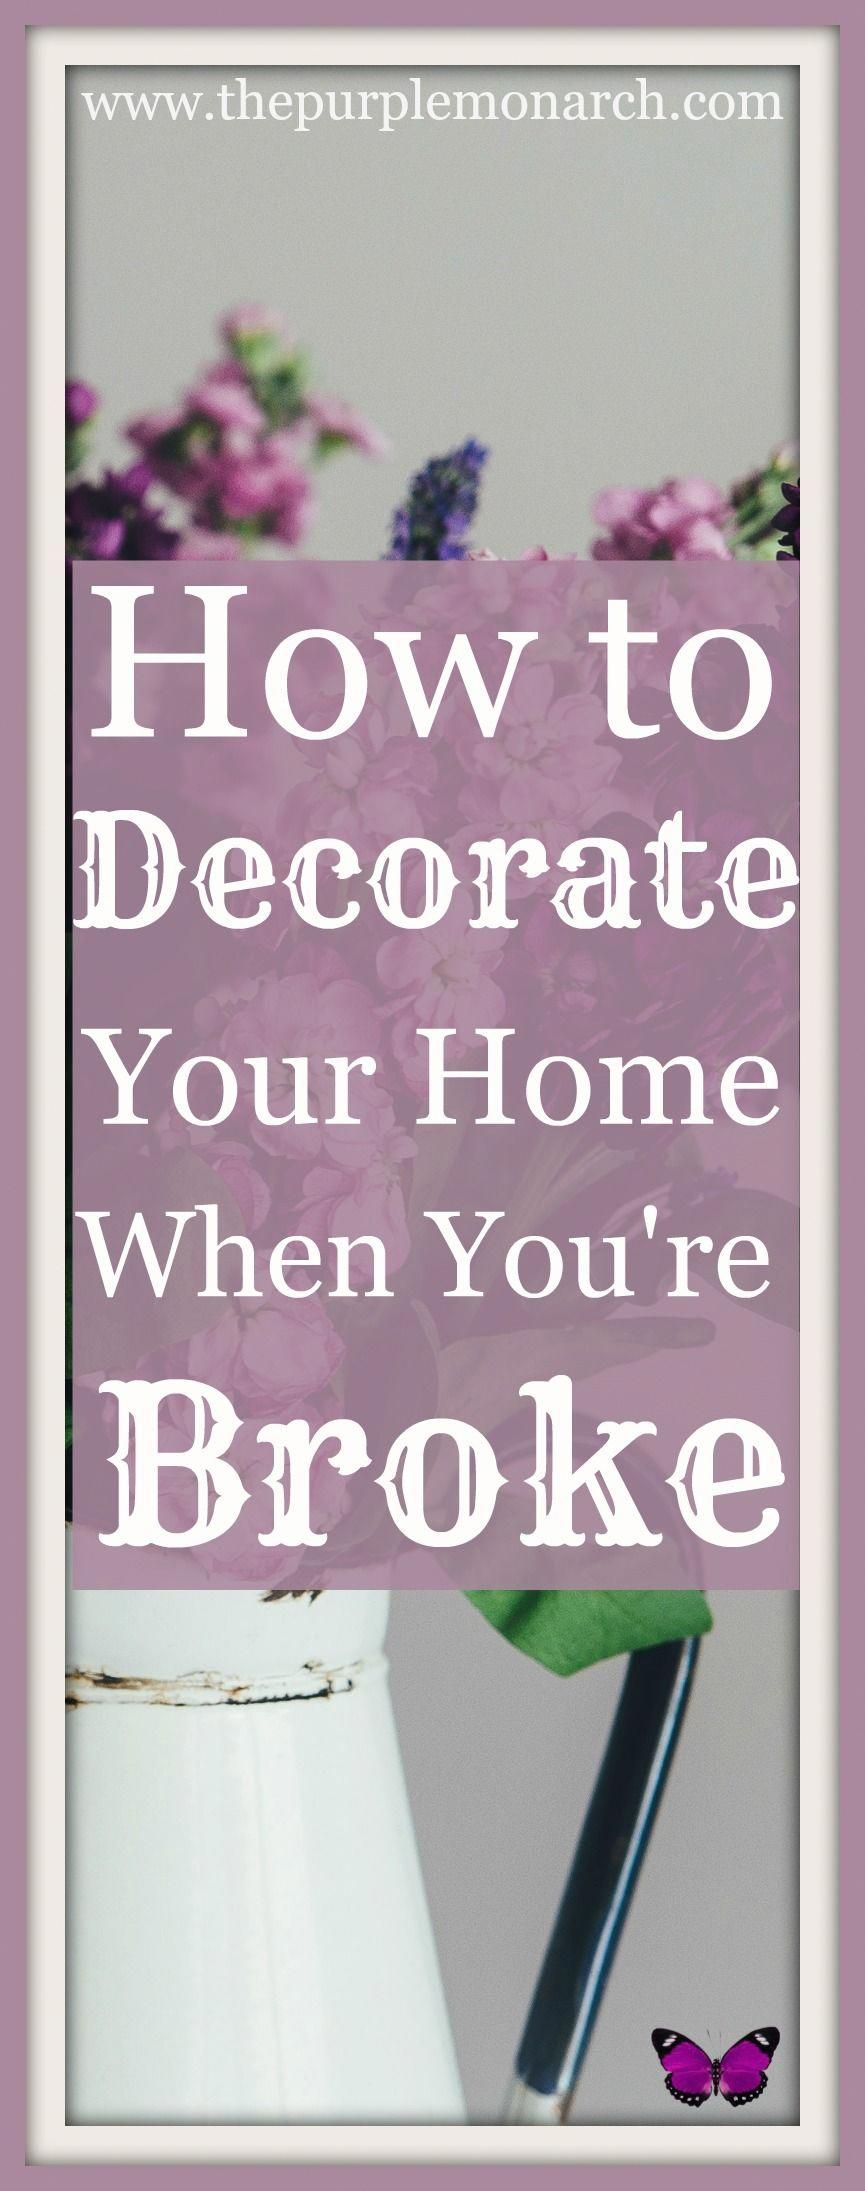 How to Decorate Your Home On A Tight Budget When You're Broke! ⋆ The Purple Monarch